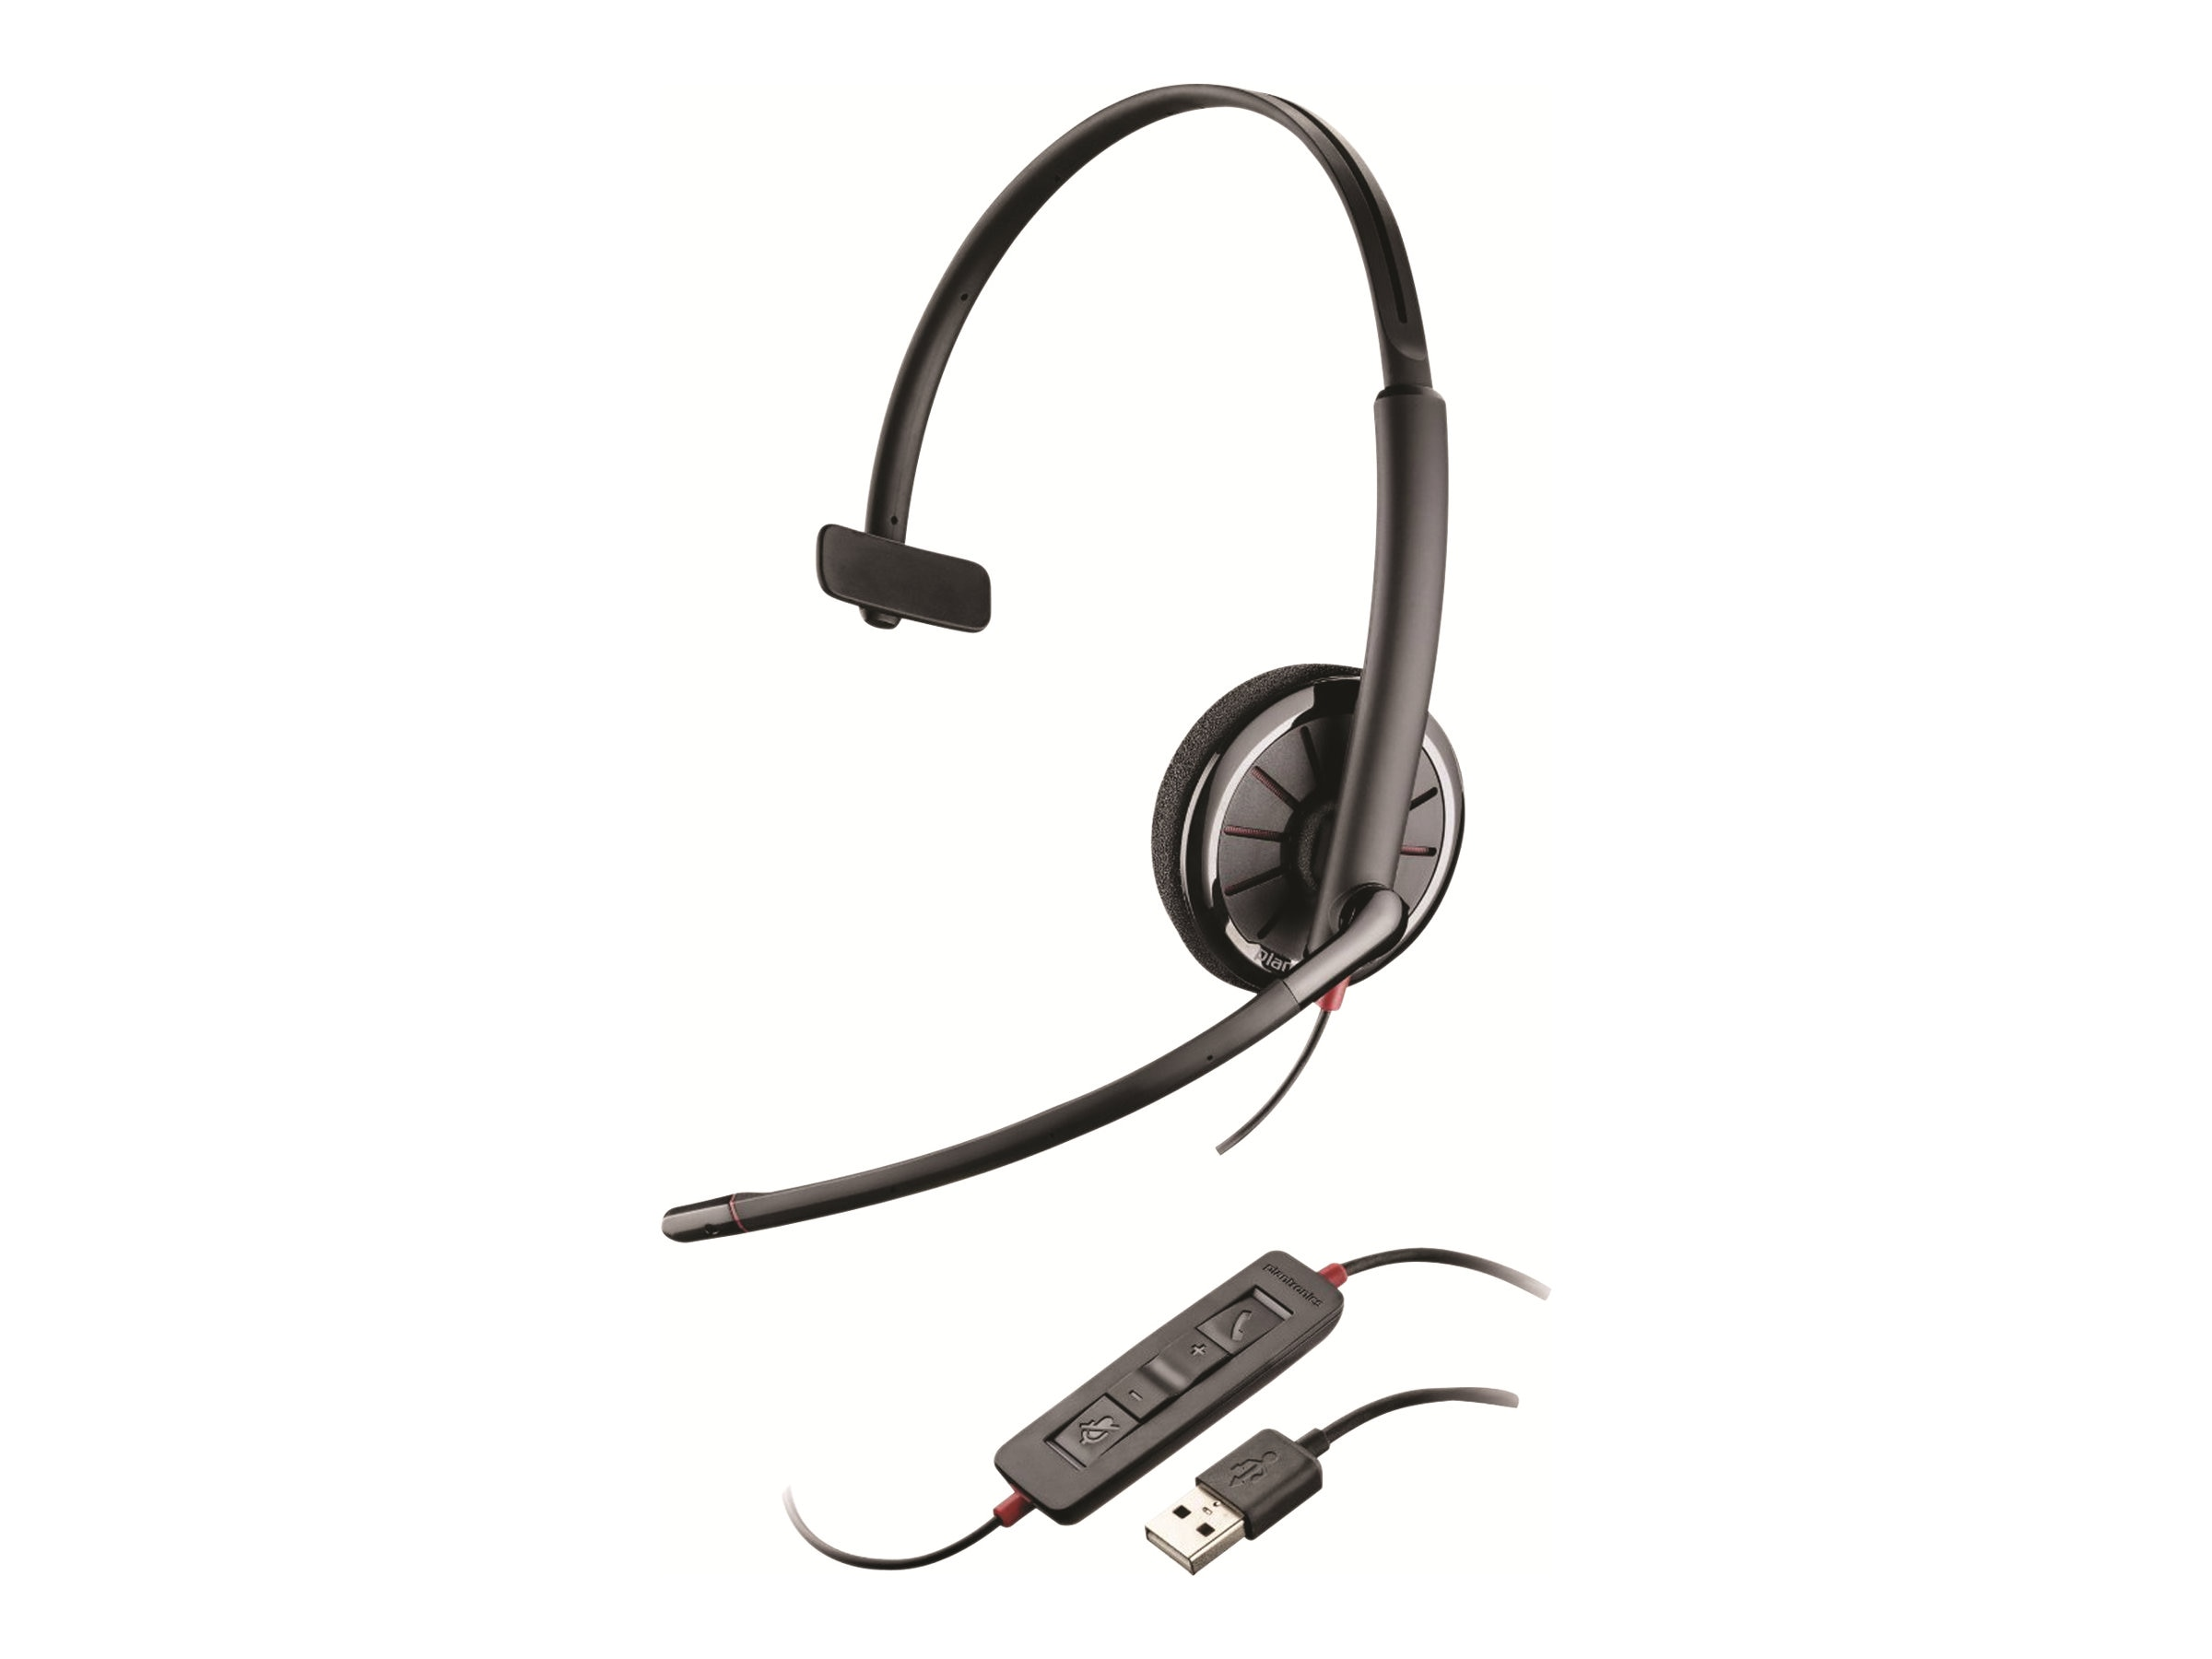 Plantronics Blackwire 300 C310-M Headset for Microsoft Lync and Microsoft OCS 2007, 85618-01, 13857791, Headsets (w/ microphone)